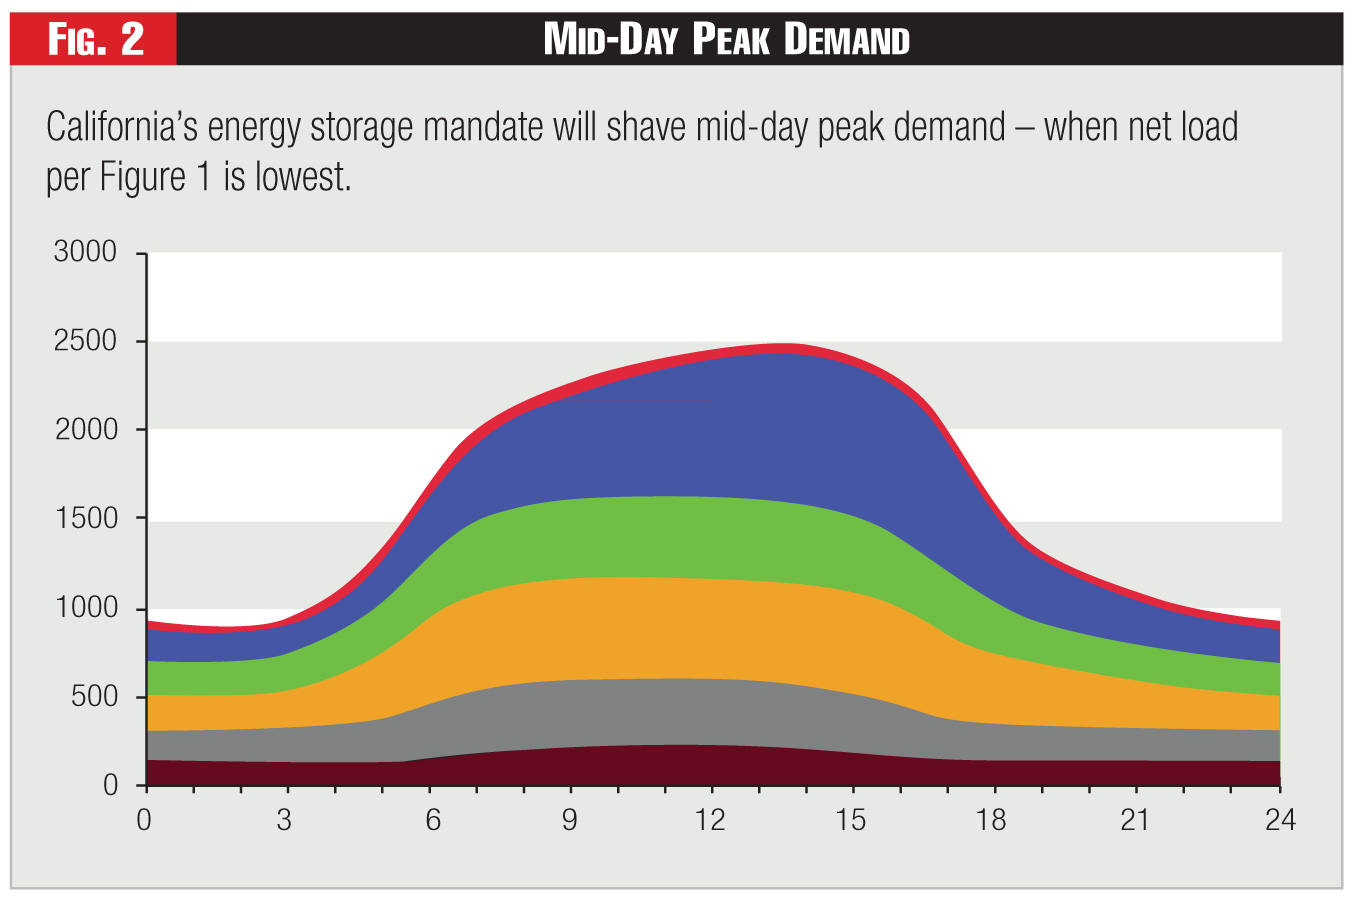 Figure 2 - Mid-Day Peak Demand